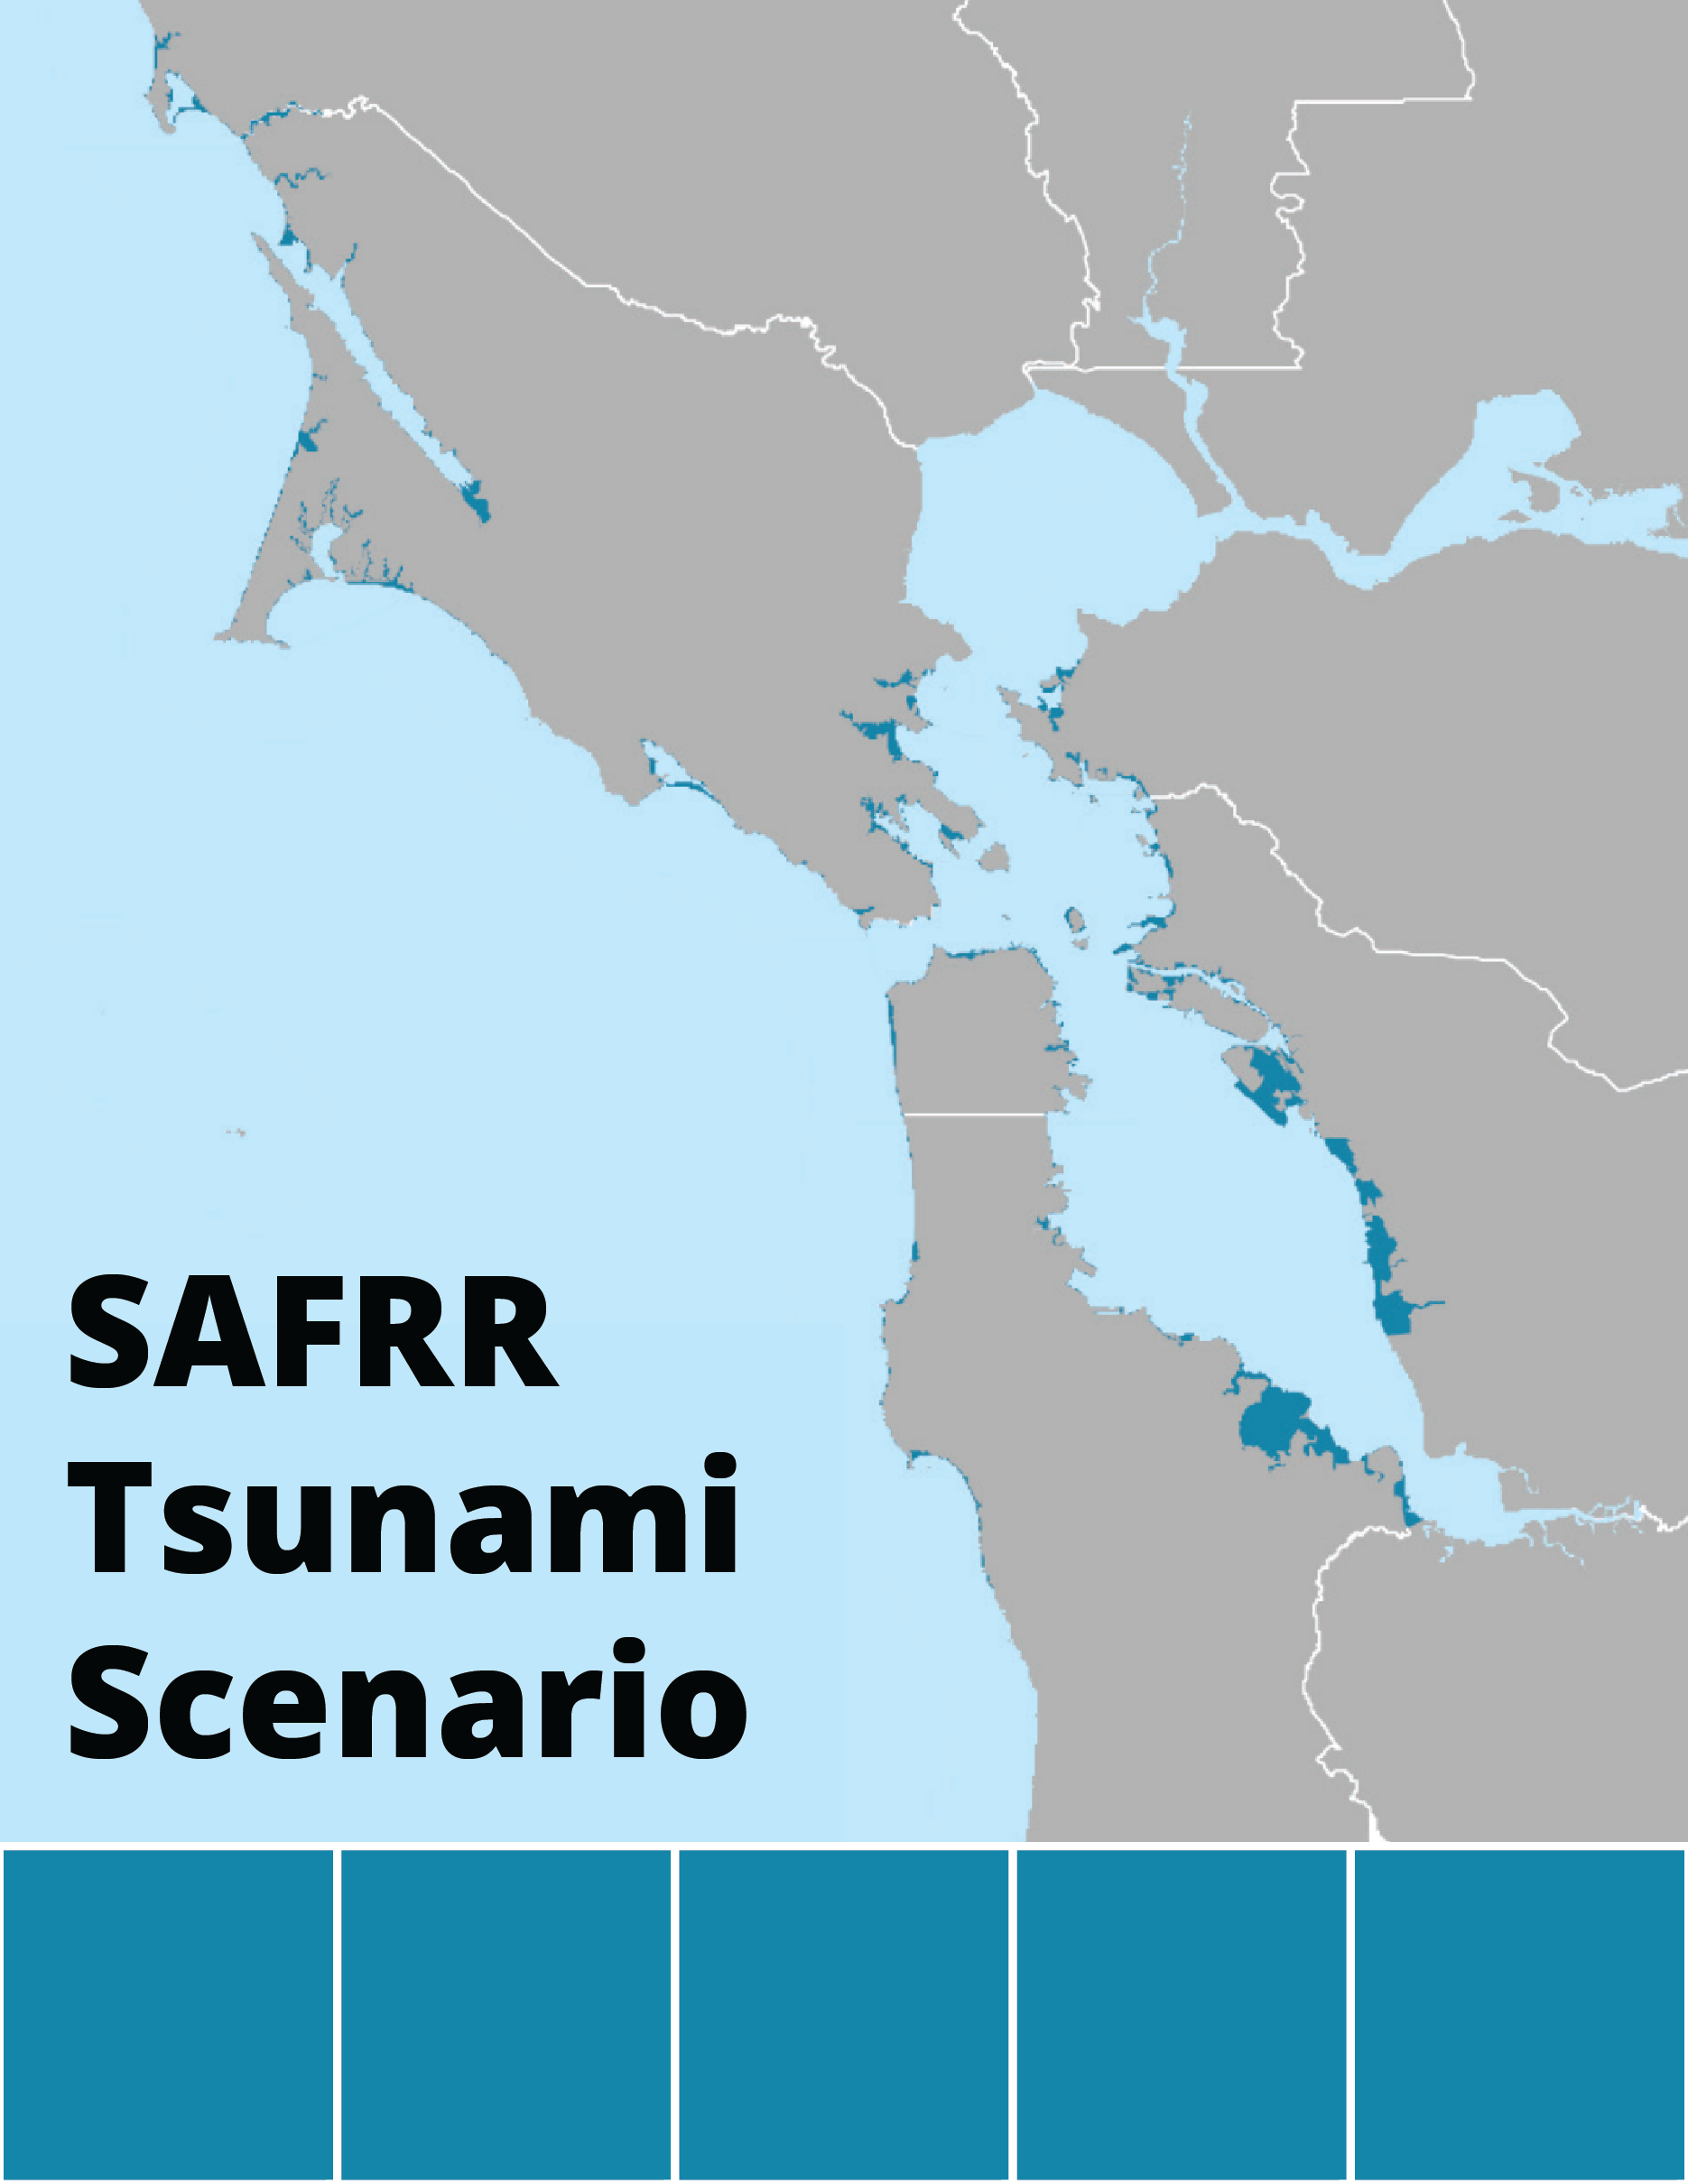 The SAFRR (Science Application for Risk Reduction) Tsunami Scenario